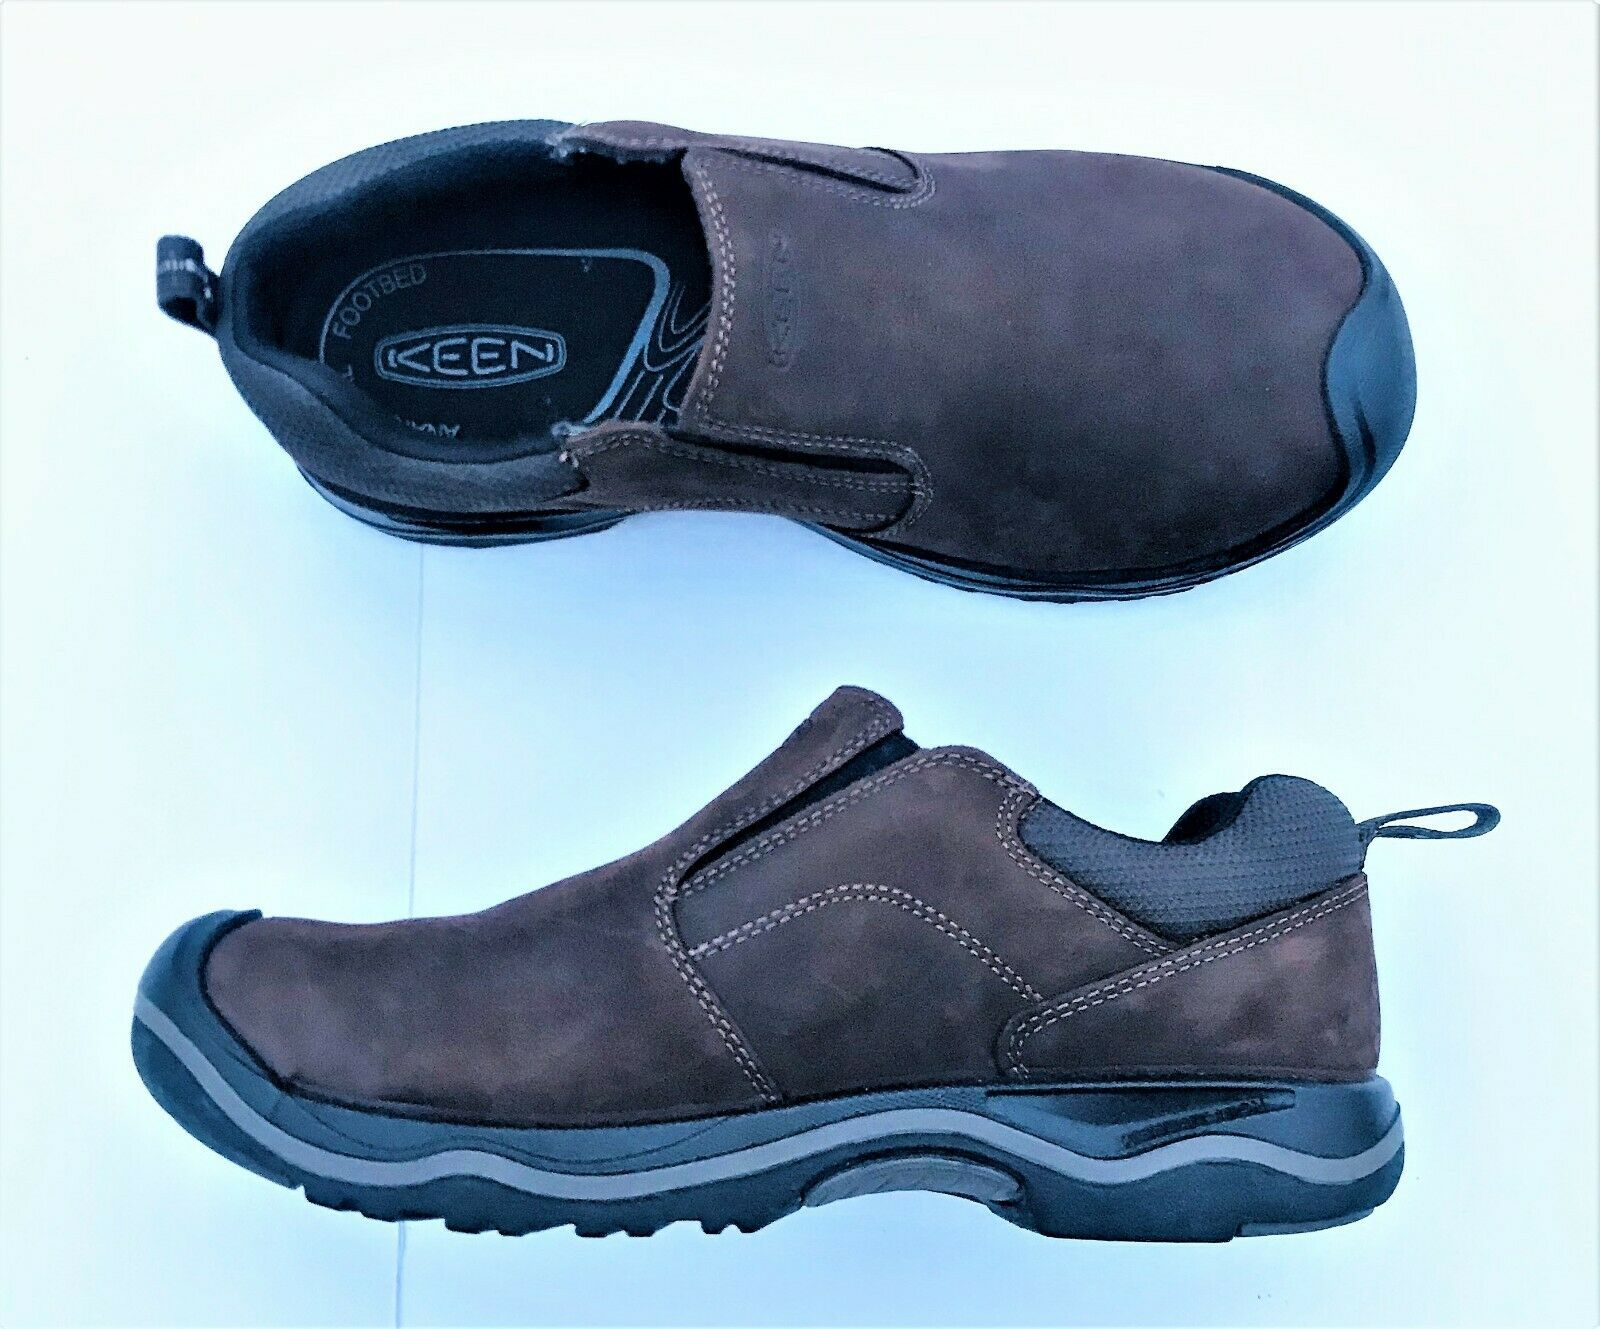 Keen Rialto Slip On Water Resistant Leather shoes 1017427 Earth Men's Sz 7